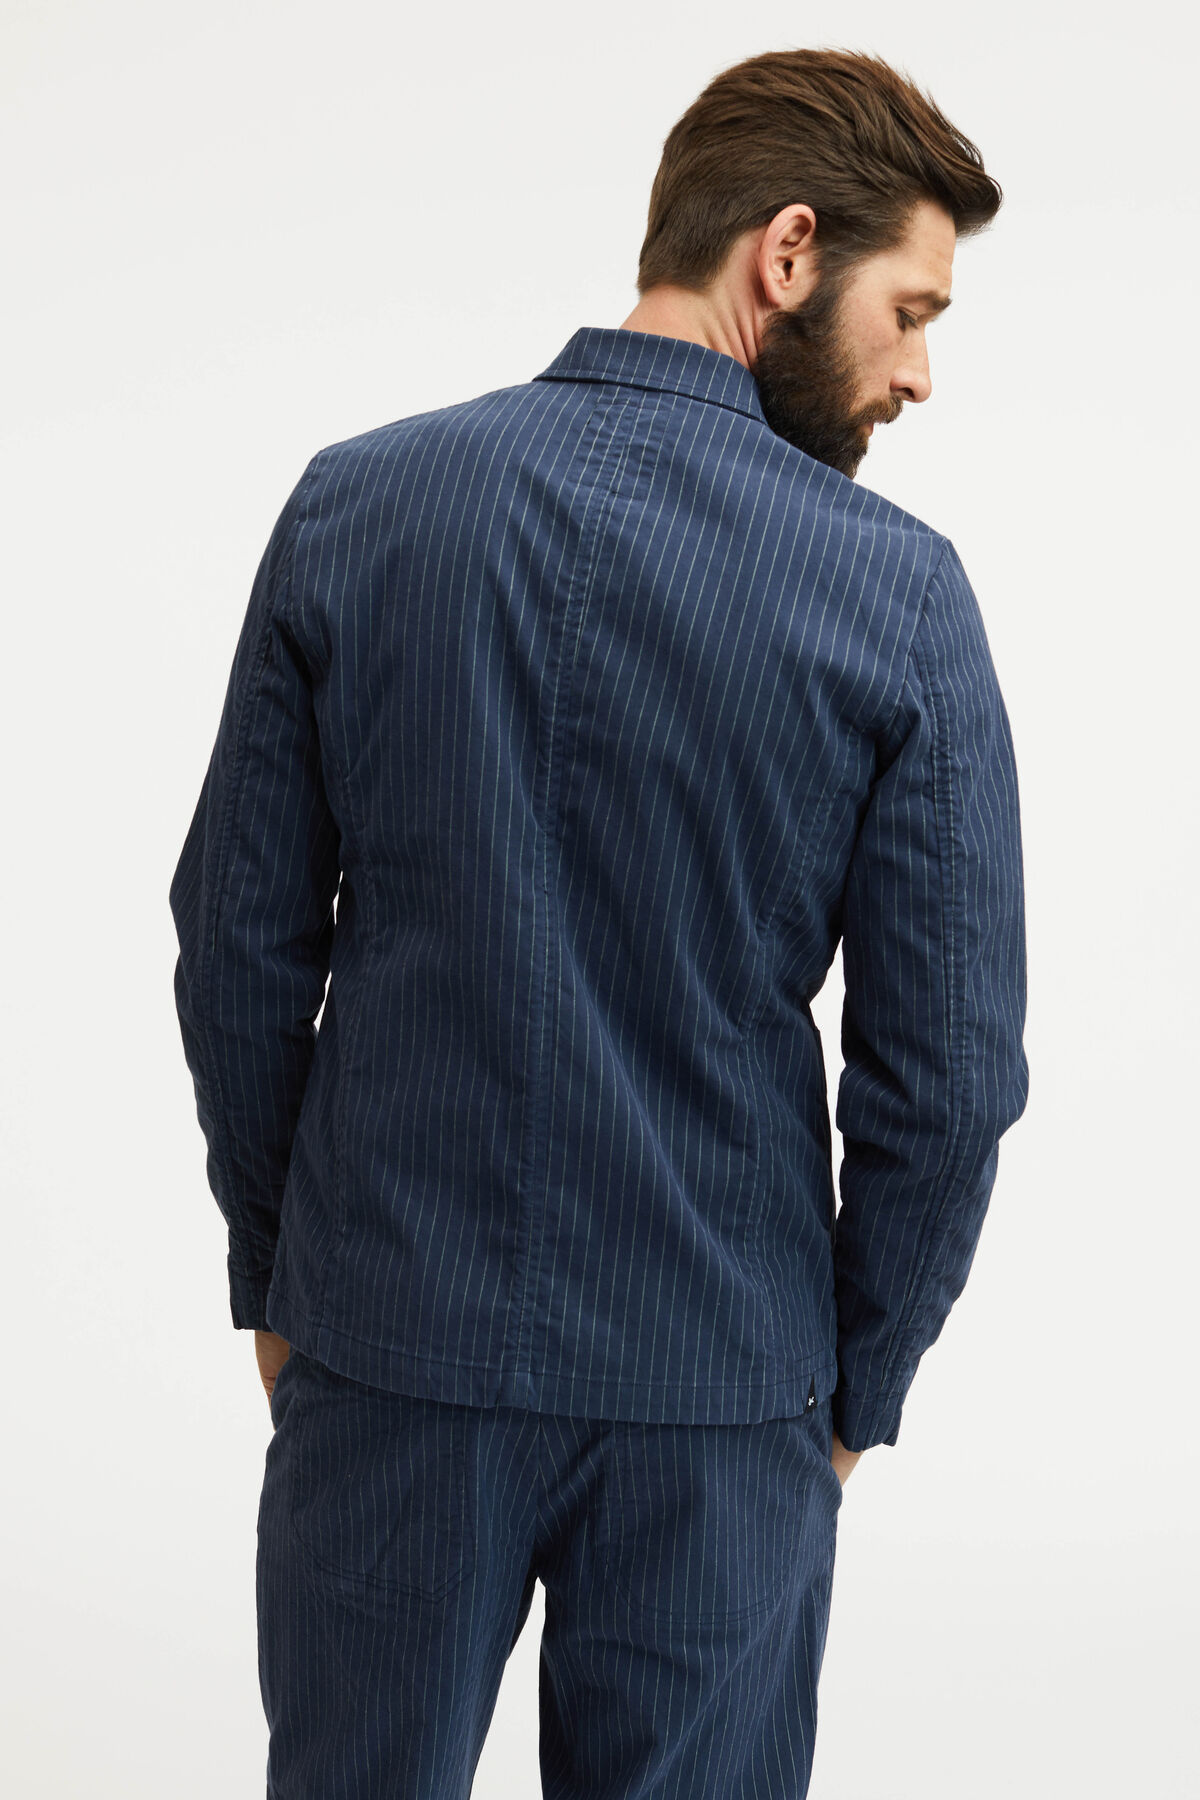 MAO TAILOR DENIM JACKET BRUSHED STRIPED COTTON FABRIC - Slim, Tailored Fit